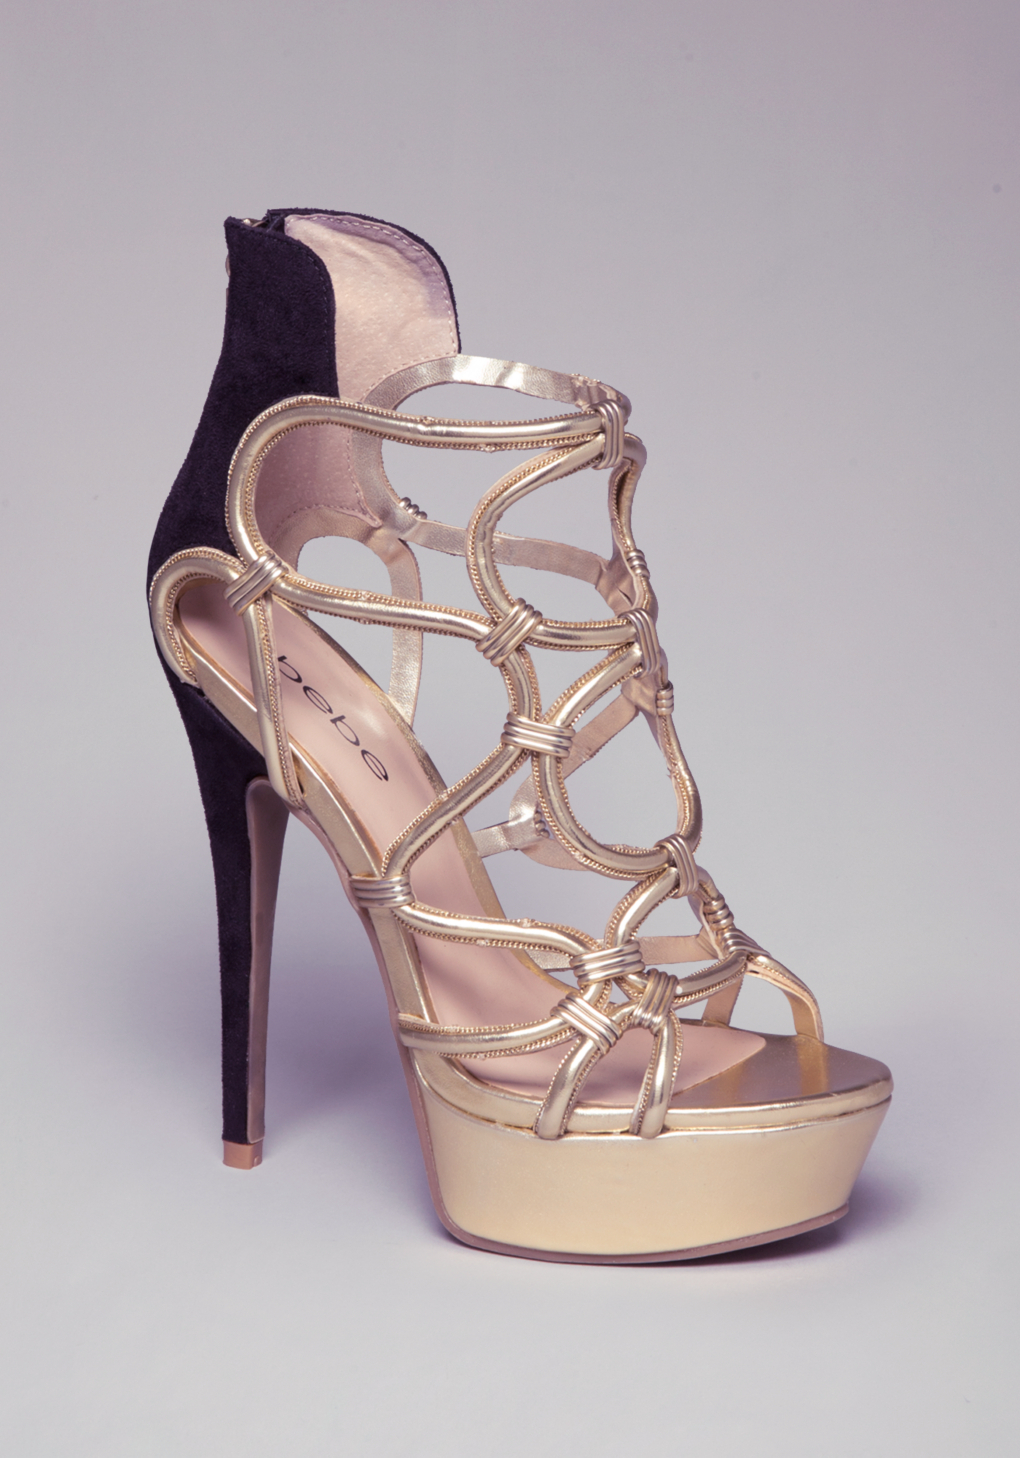 088beb3c918 Lyst - Bebe Charmaine Strappy Sandals in Metallic